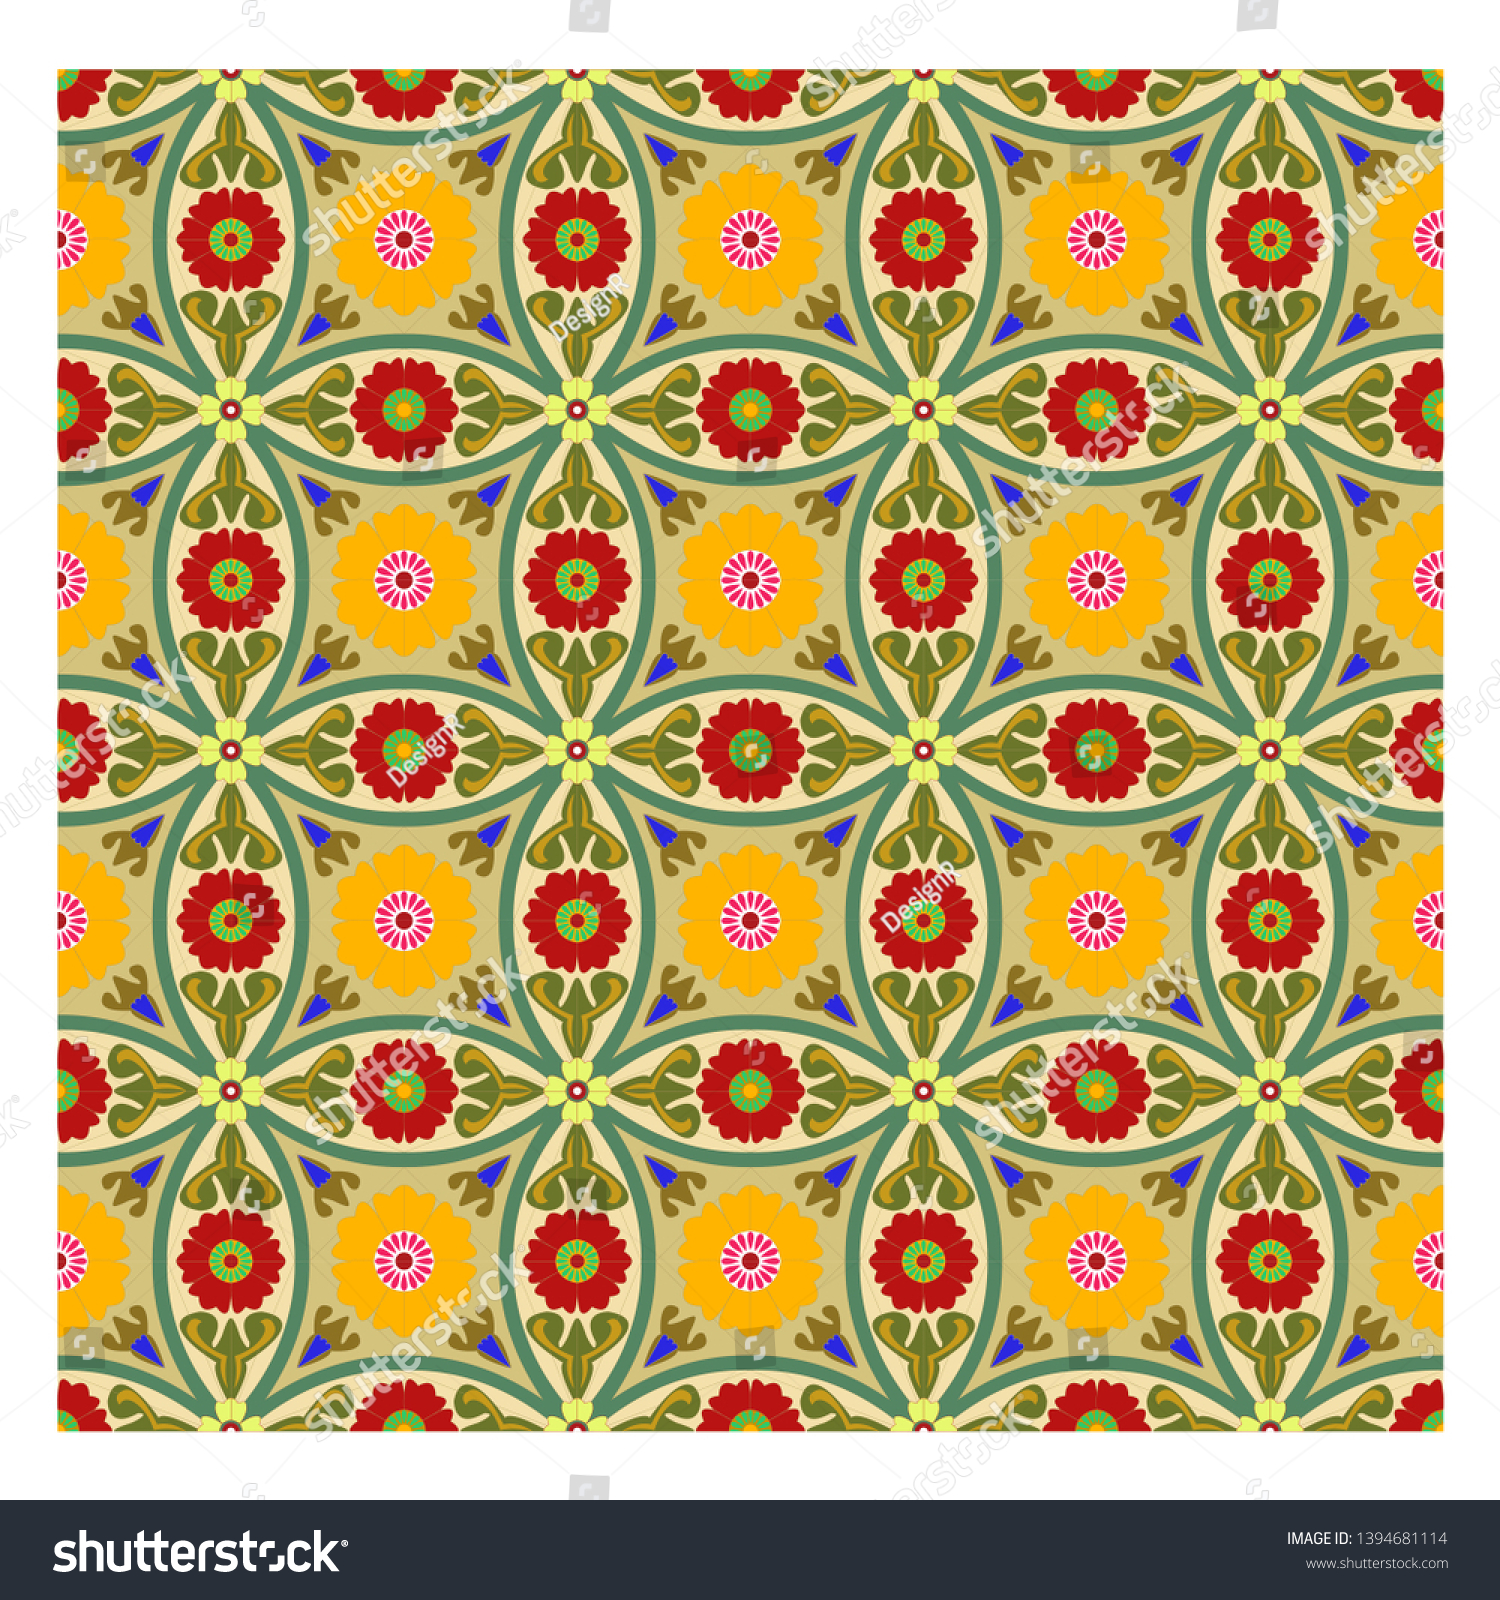 Colorful Floral Patterns Seamlessly Tilingseamless Pattern